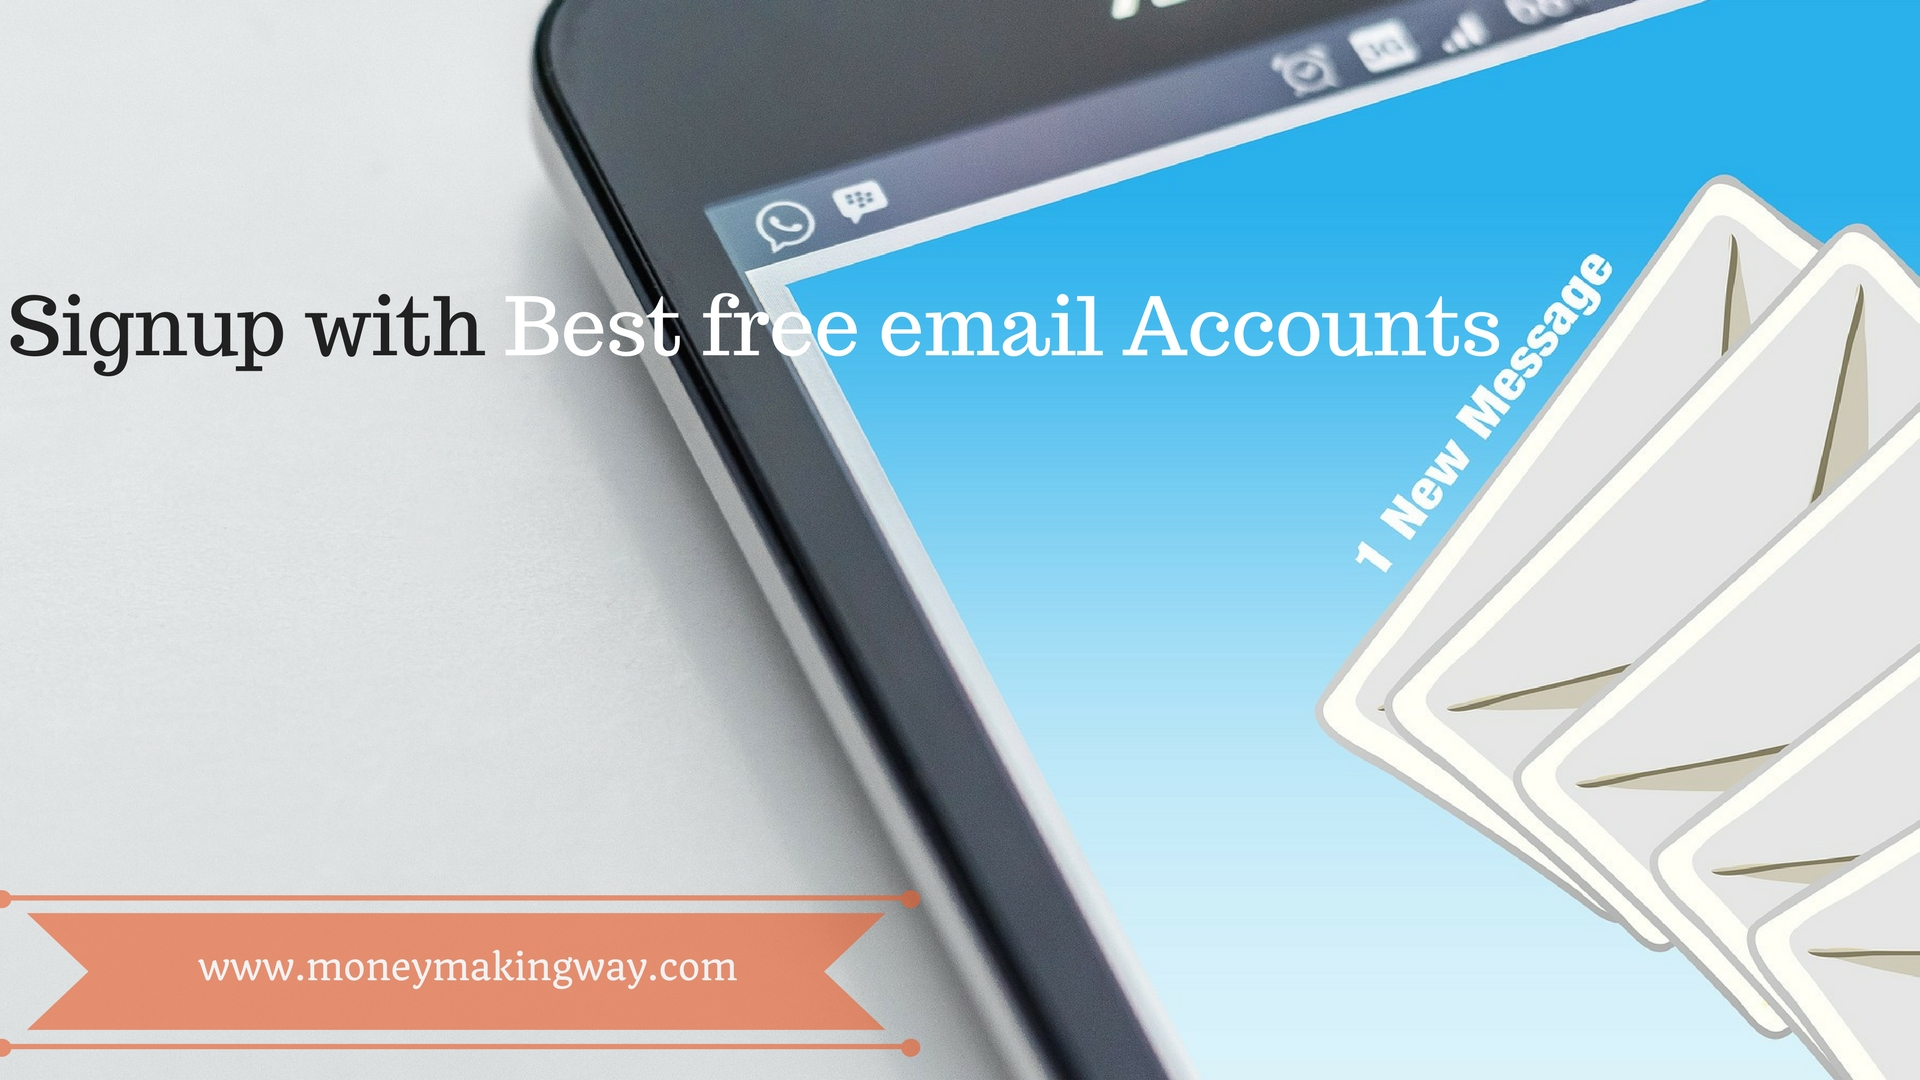 Free email accounts